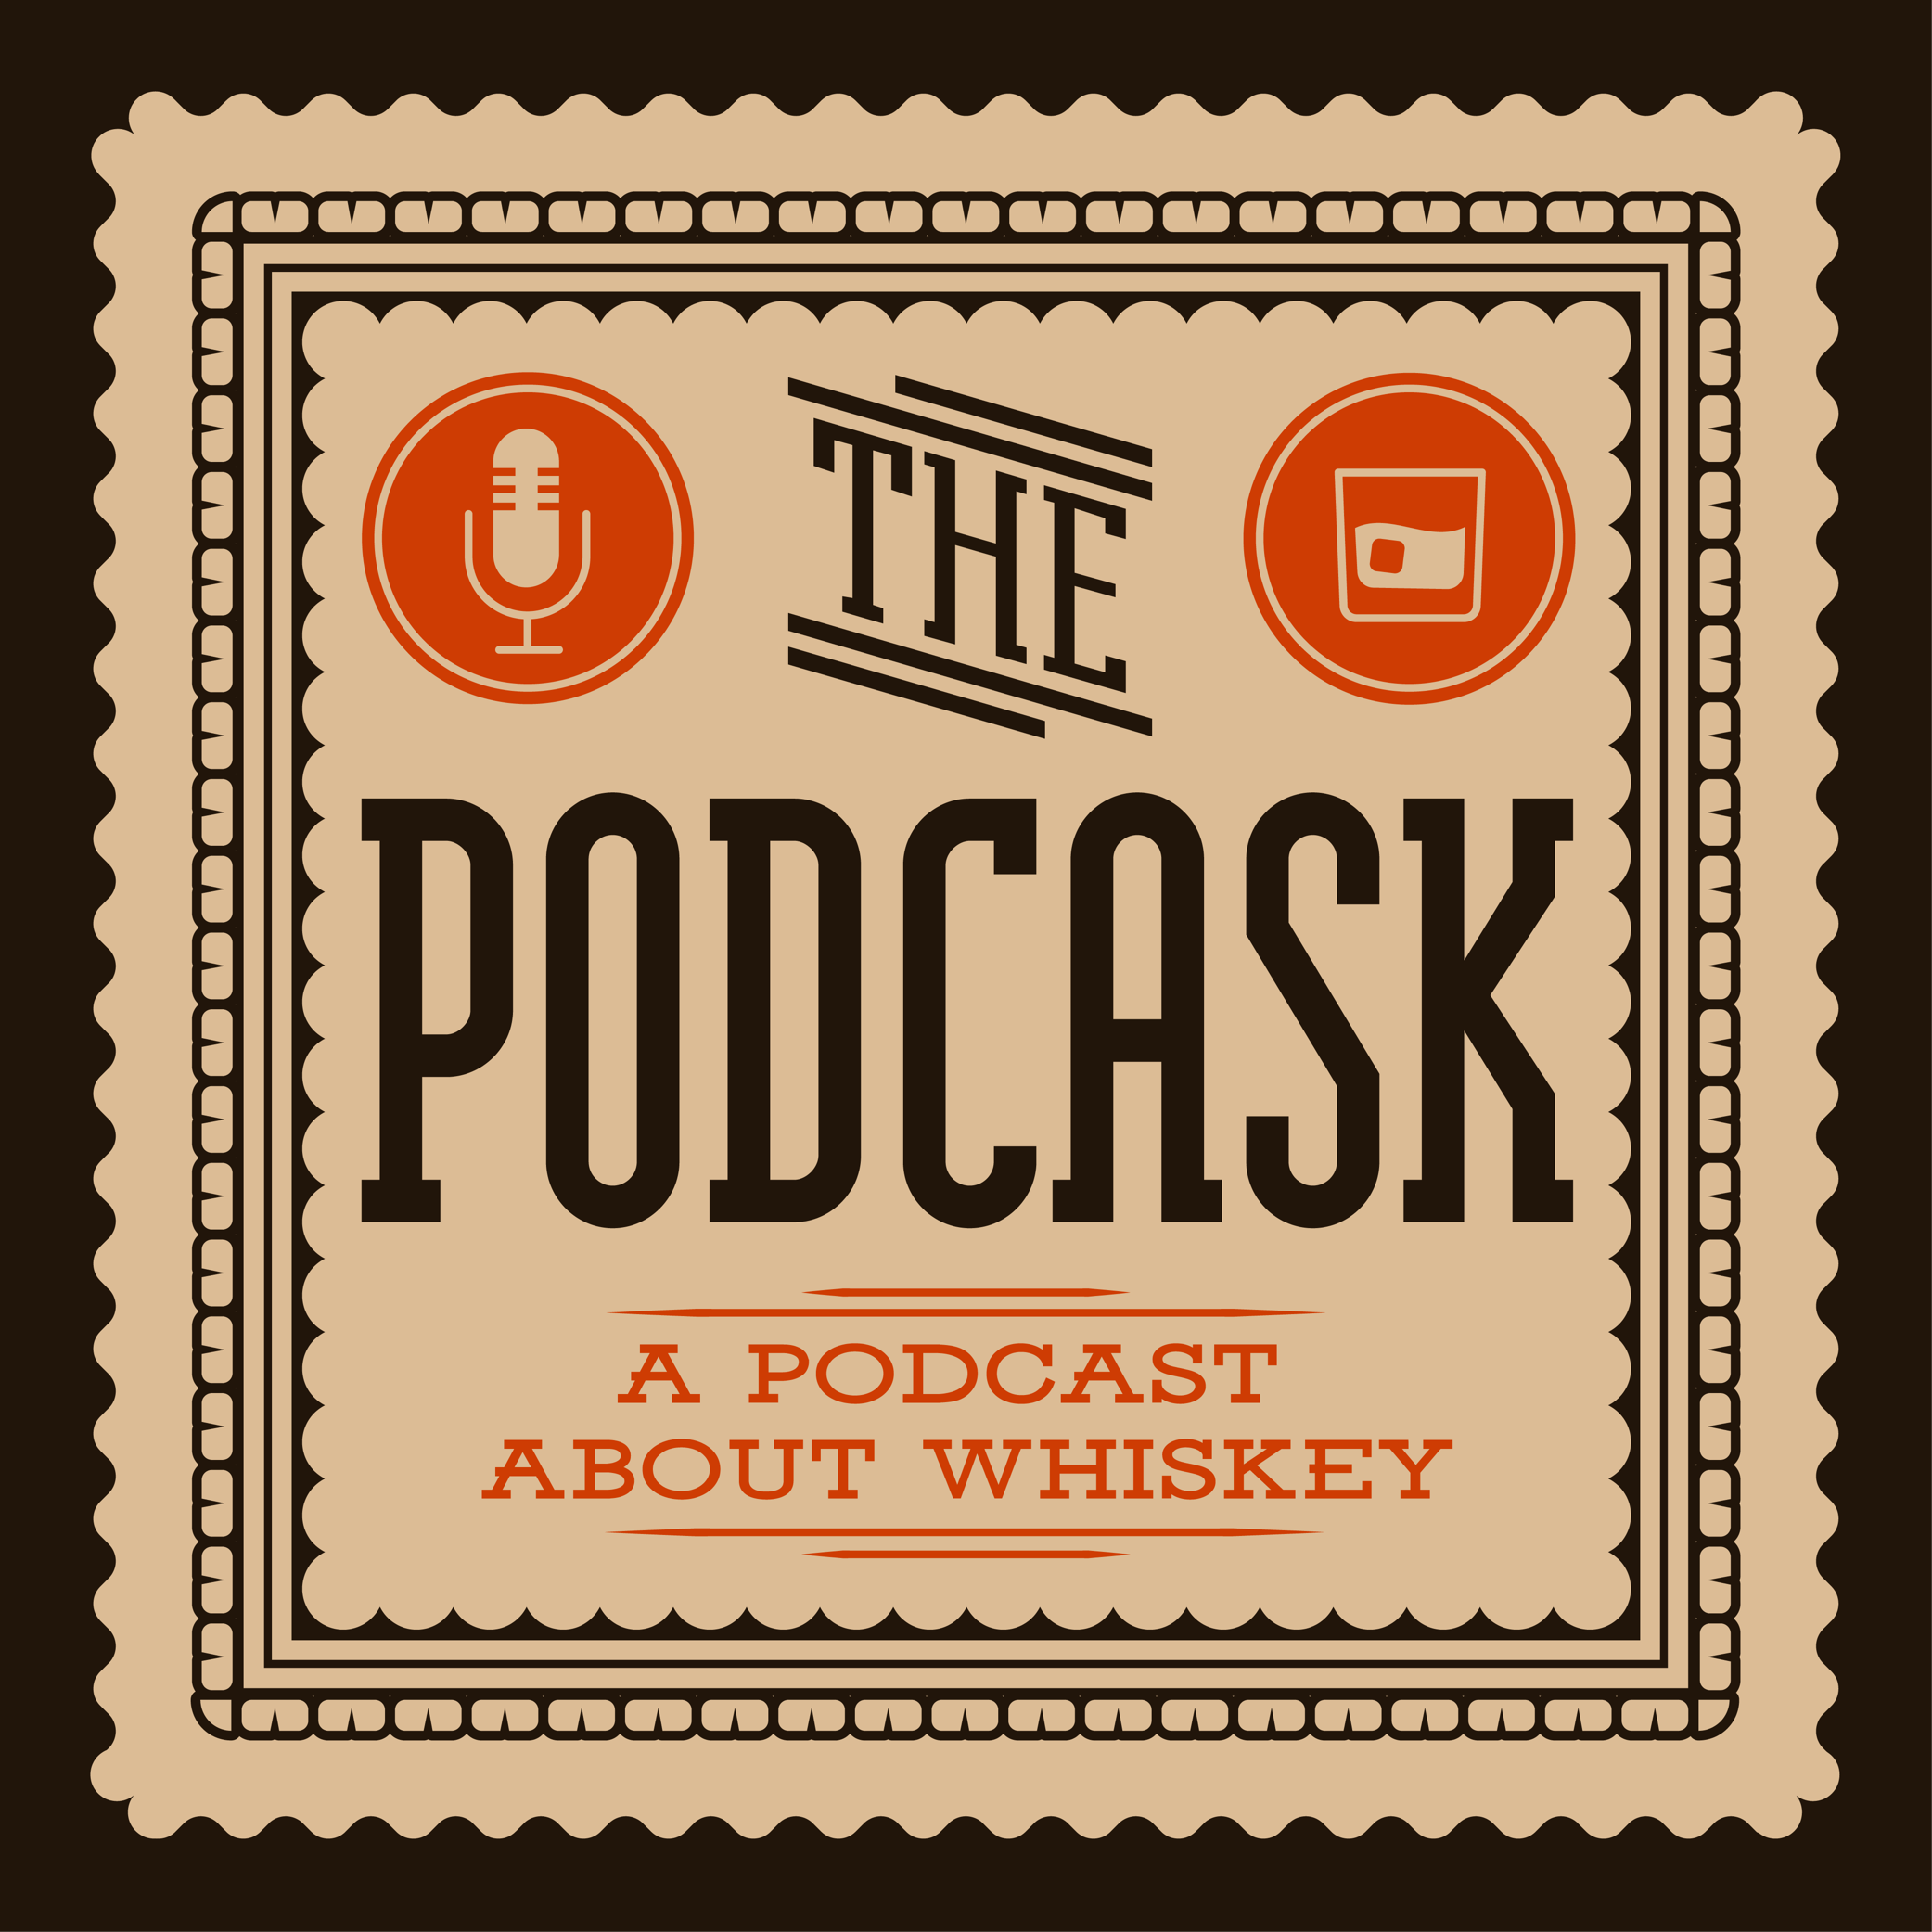 The PodCask